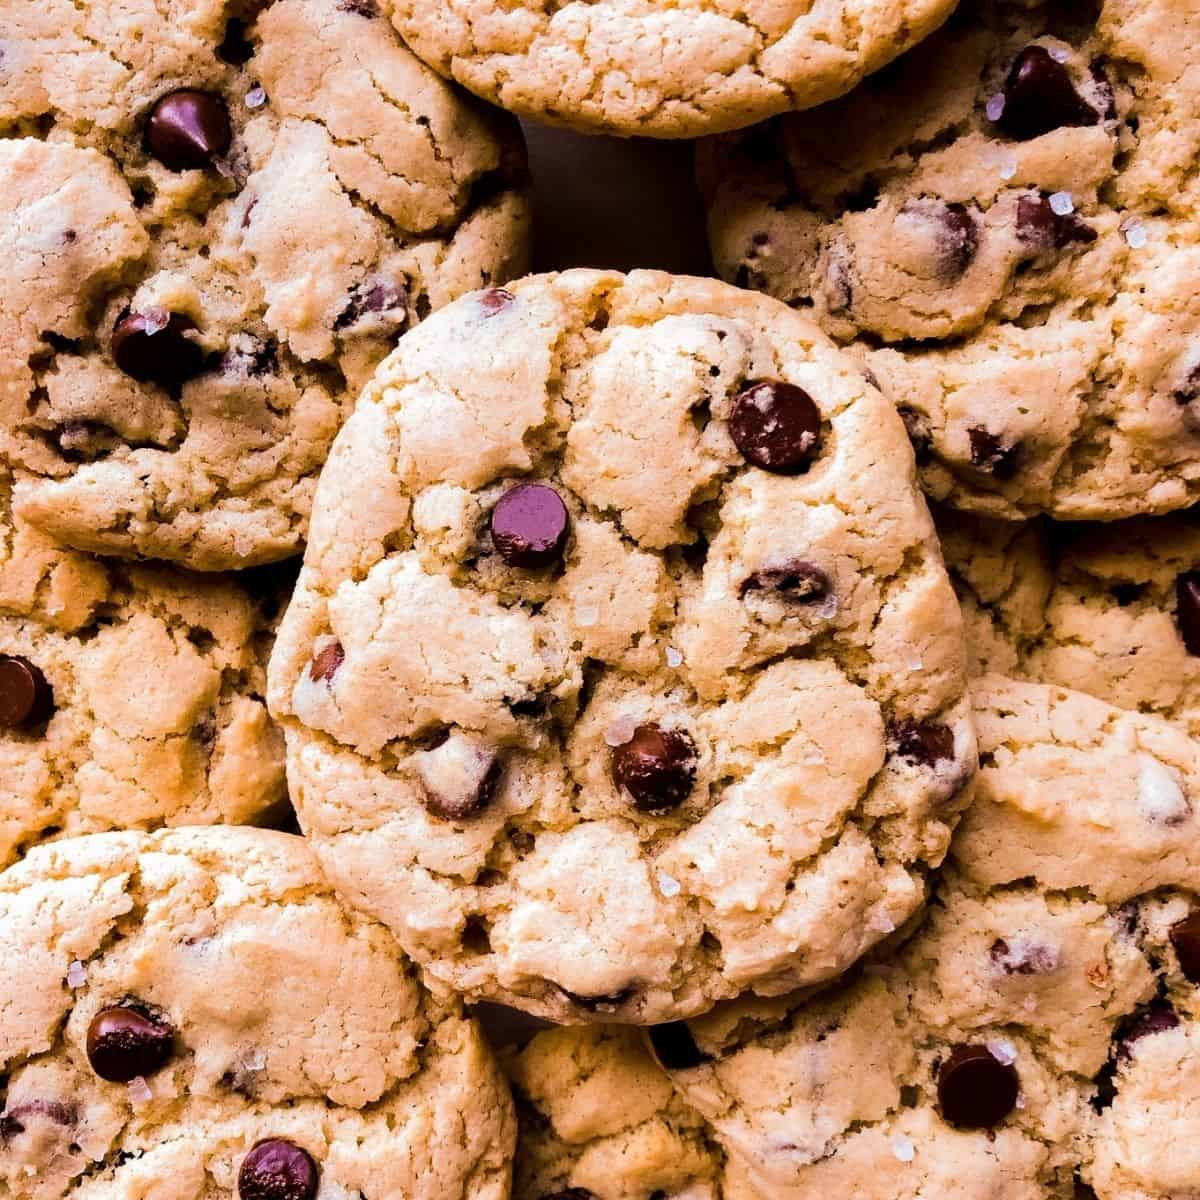 a pile of gluten free vegan chocolate chip cookies up close